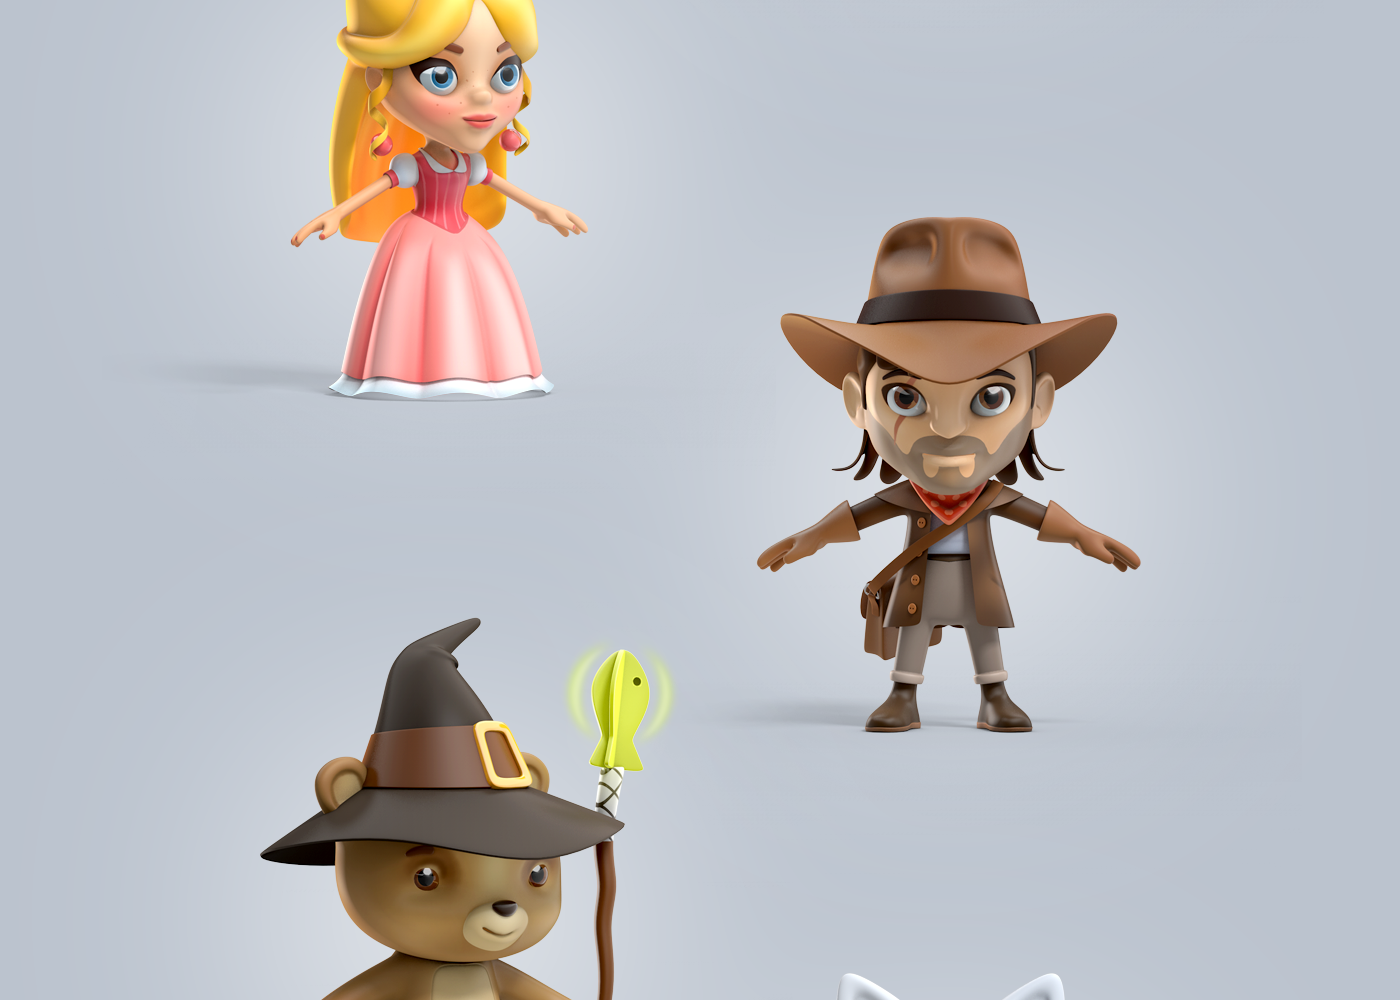 Rookie - Character design on Behance